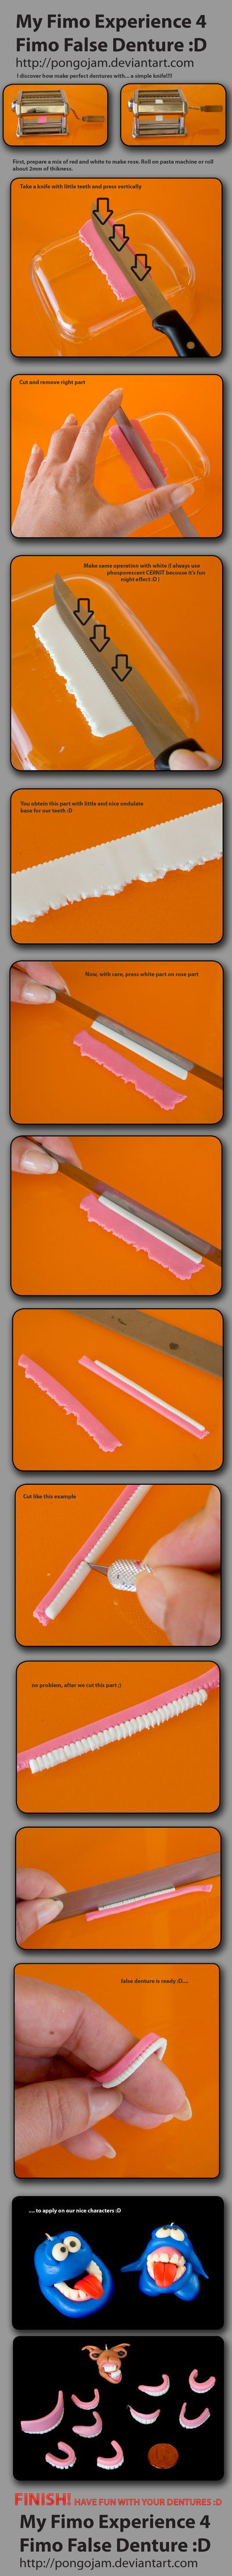 can be use with fondant too Fimo Denture TUTORIAL by *pongojam on deviantART for dentist, bathroom or maybe for a spooky idea or too - fun